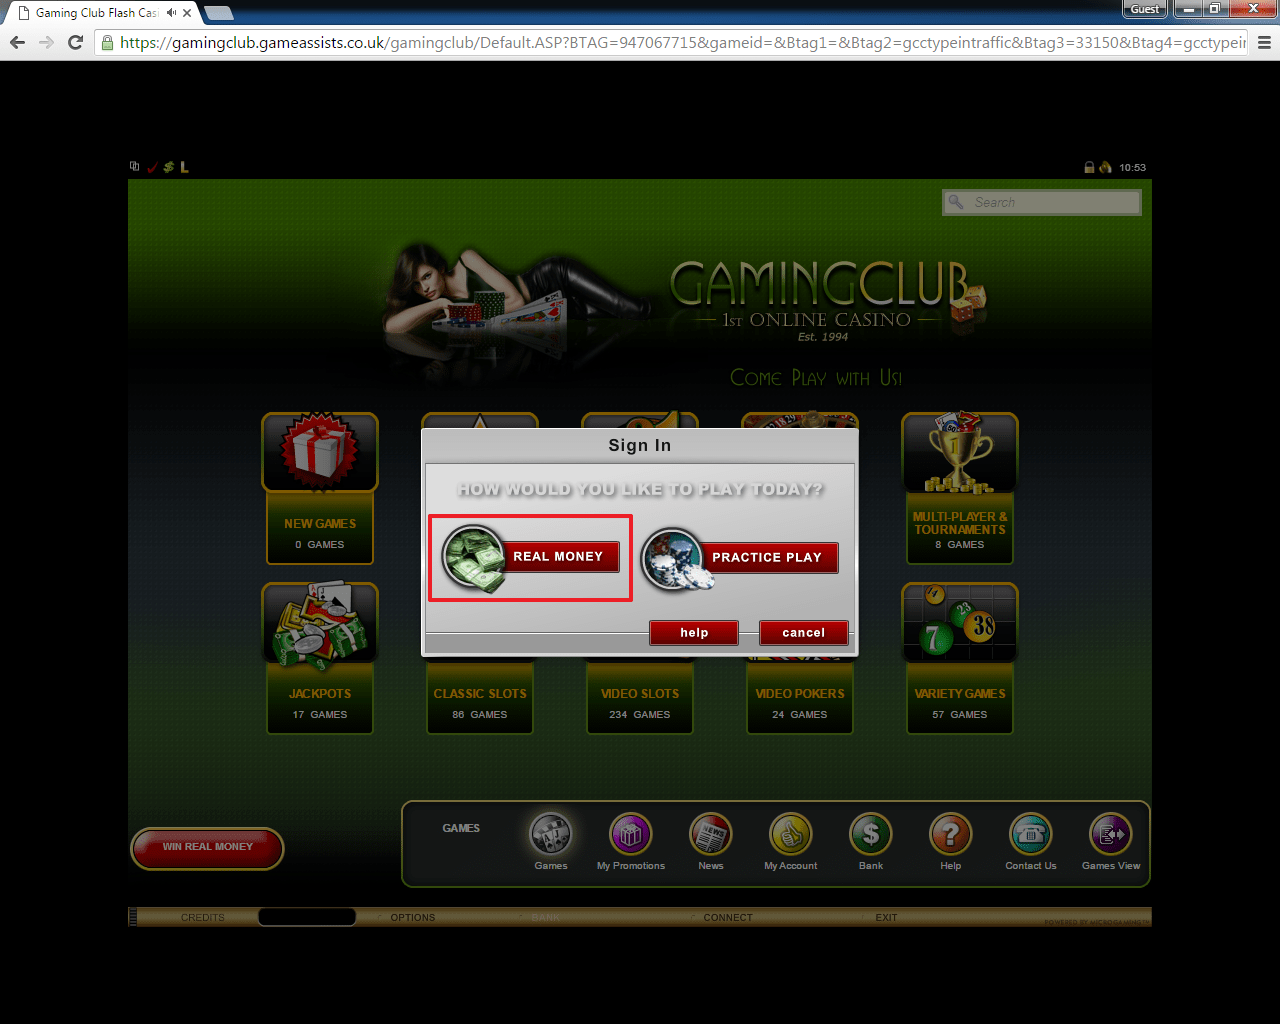 Gaming Club casino login 2